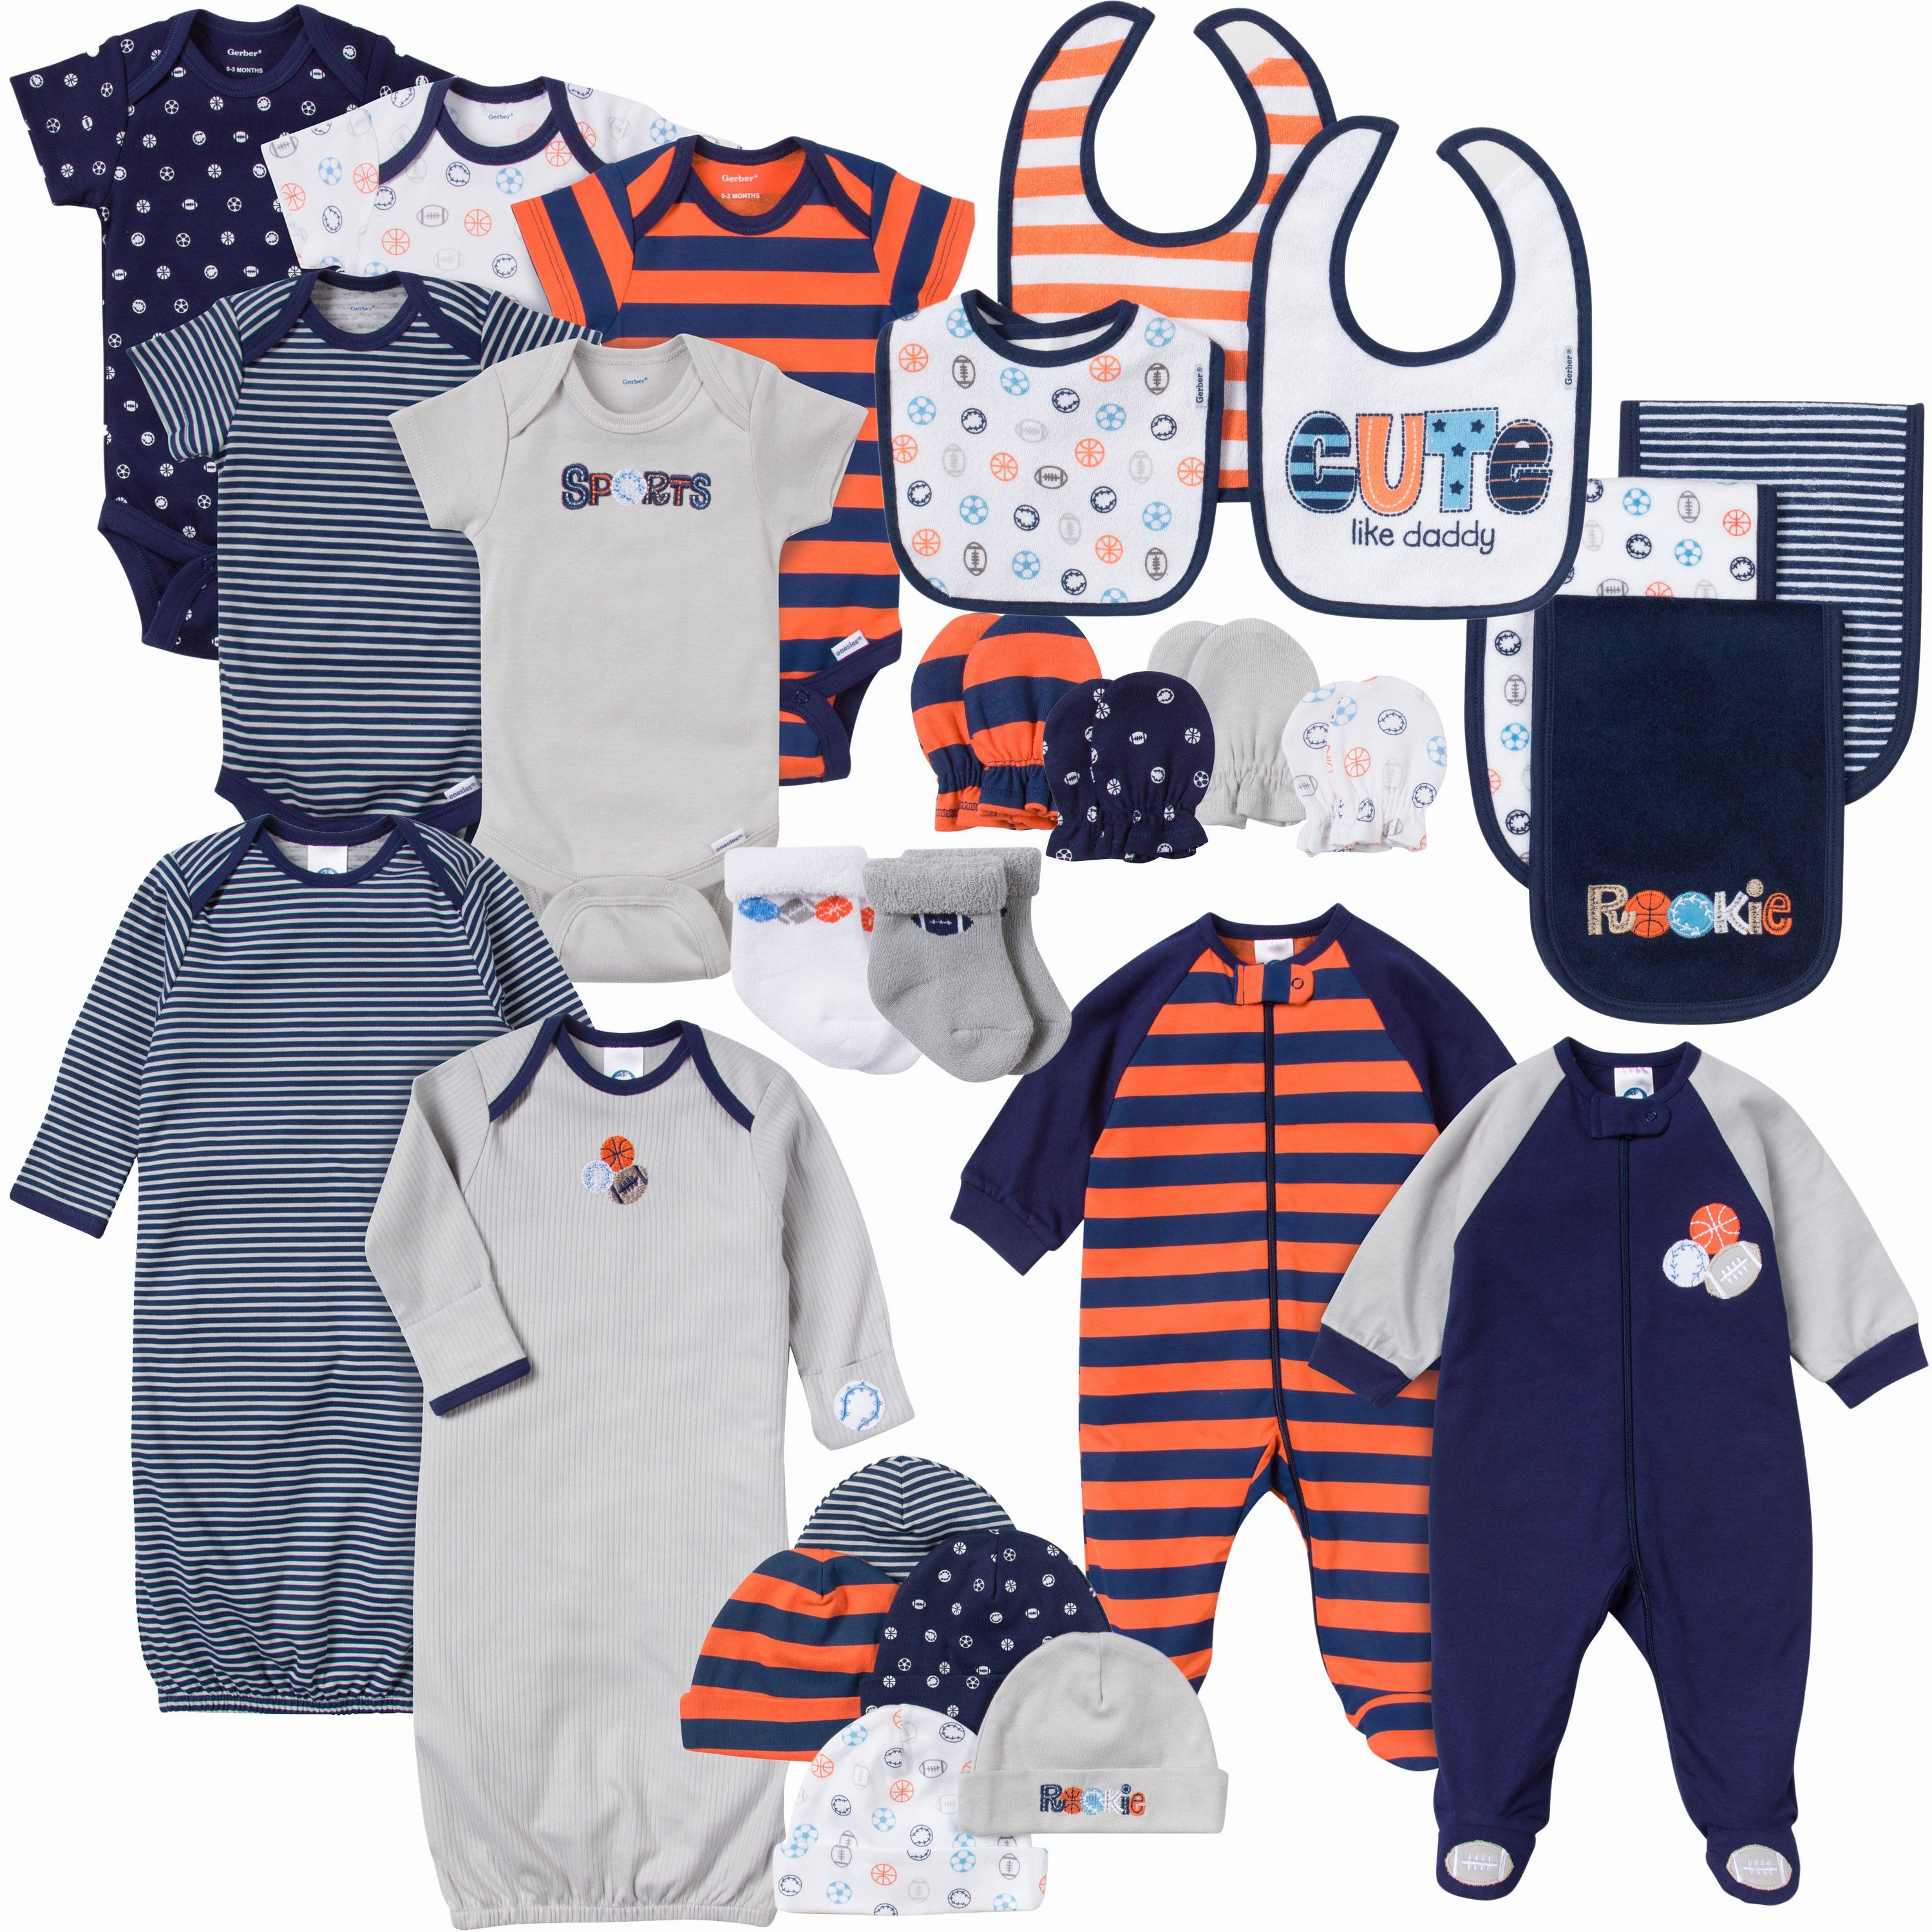 This 26-piece set for baby boy has everything a new mom needs! This 100% cotton set includes 5 Onesies® brand bodysuits, 2 Sleep N' Plays, 2 gowns, 5 knit caps, 4 mitten sets, 3 terry bibs, 3 terry burpcloths, and 2 sets of socks. Smart design features and soft fabric that keeps baby comfy are sure to make this set a big hit with mom and baby!